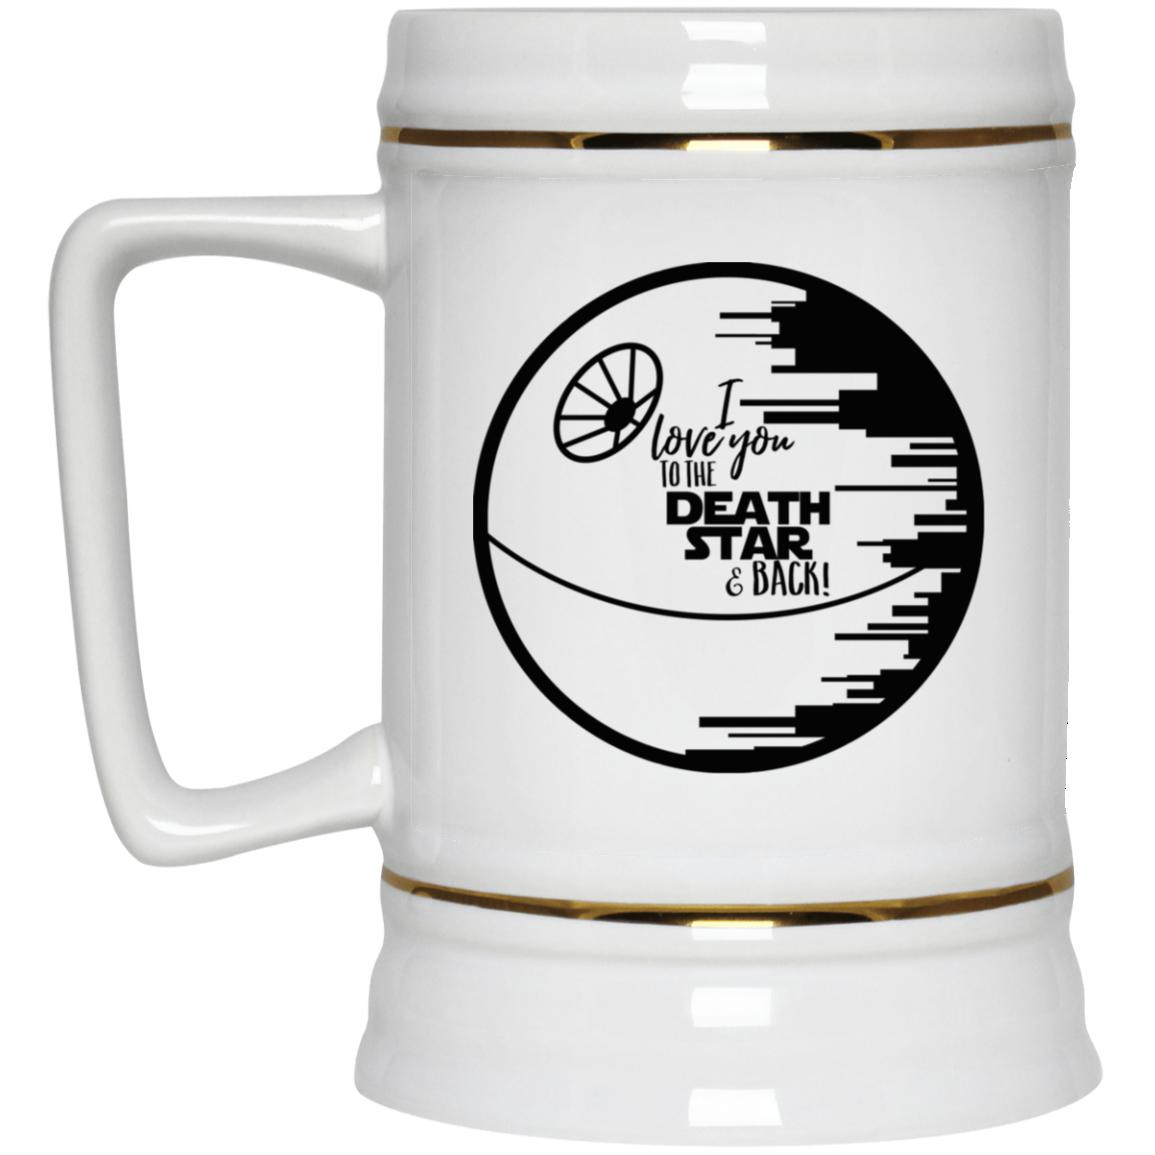 I Love You To the Death Star & Back Beer Stein 22oz.